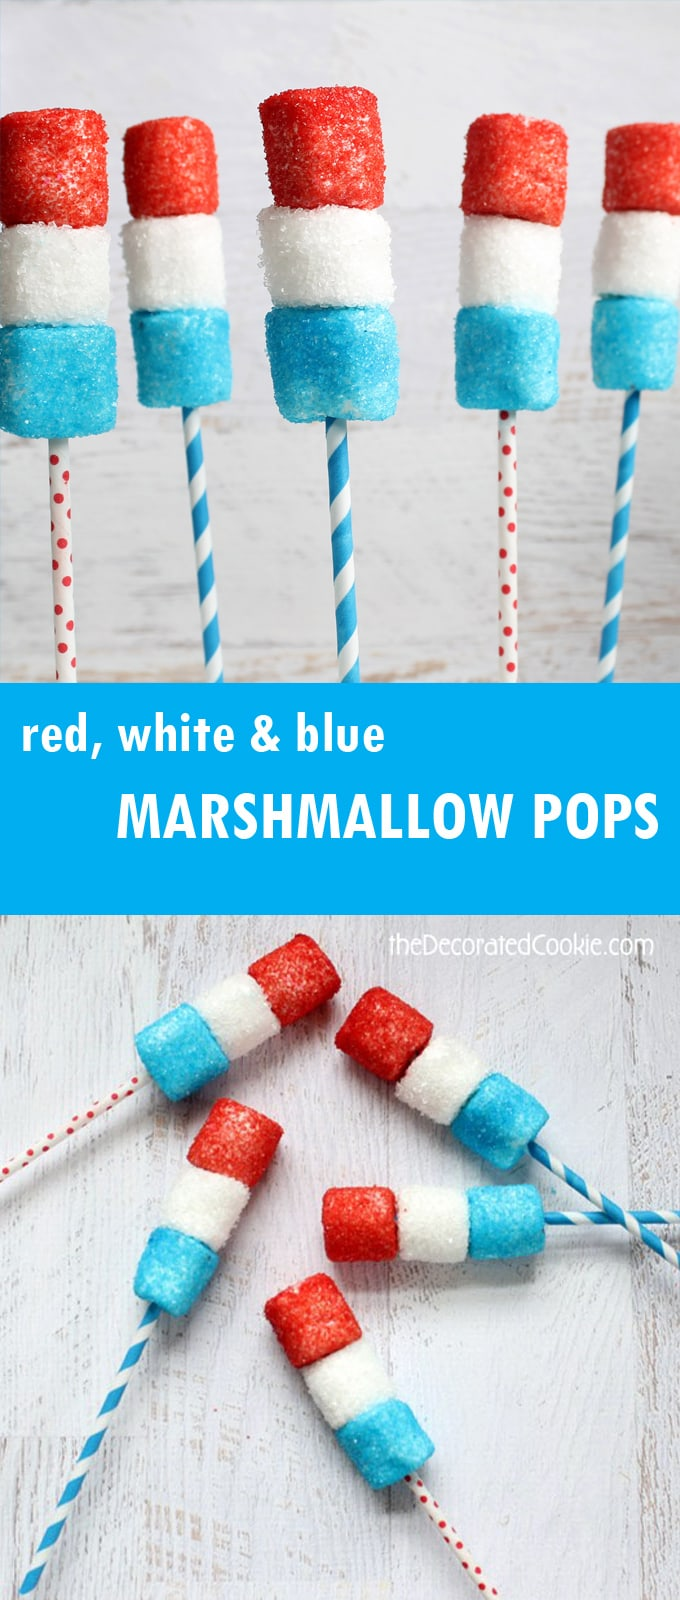 red, white and blue marshmallow pops for the 4th of July